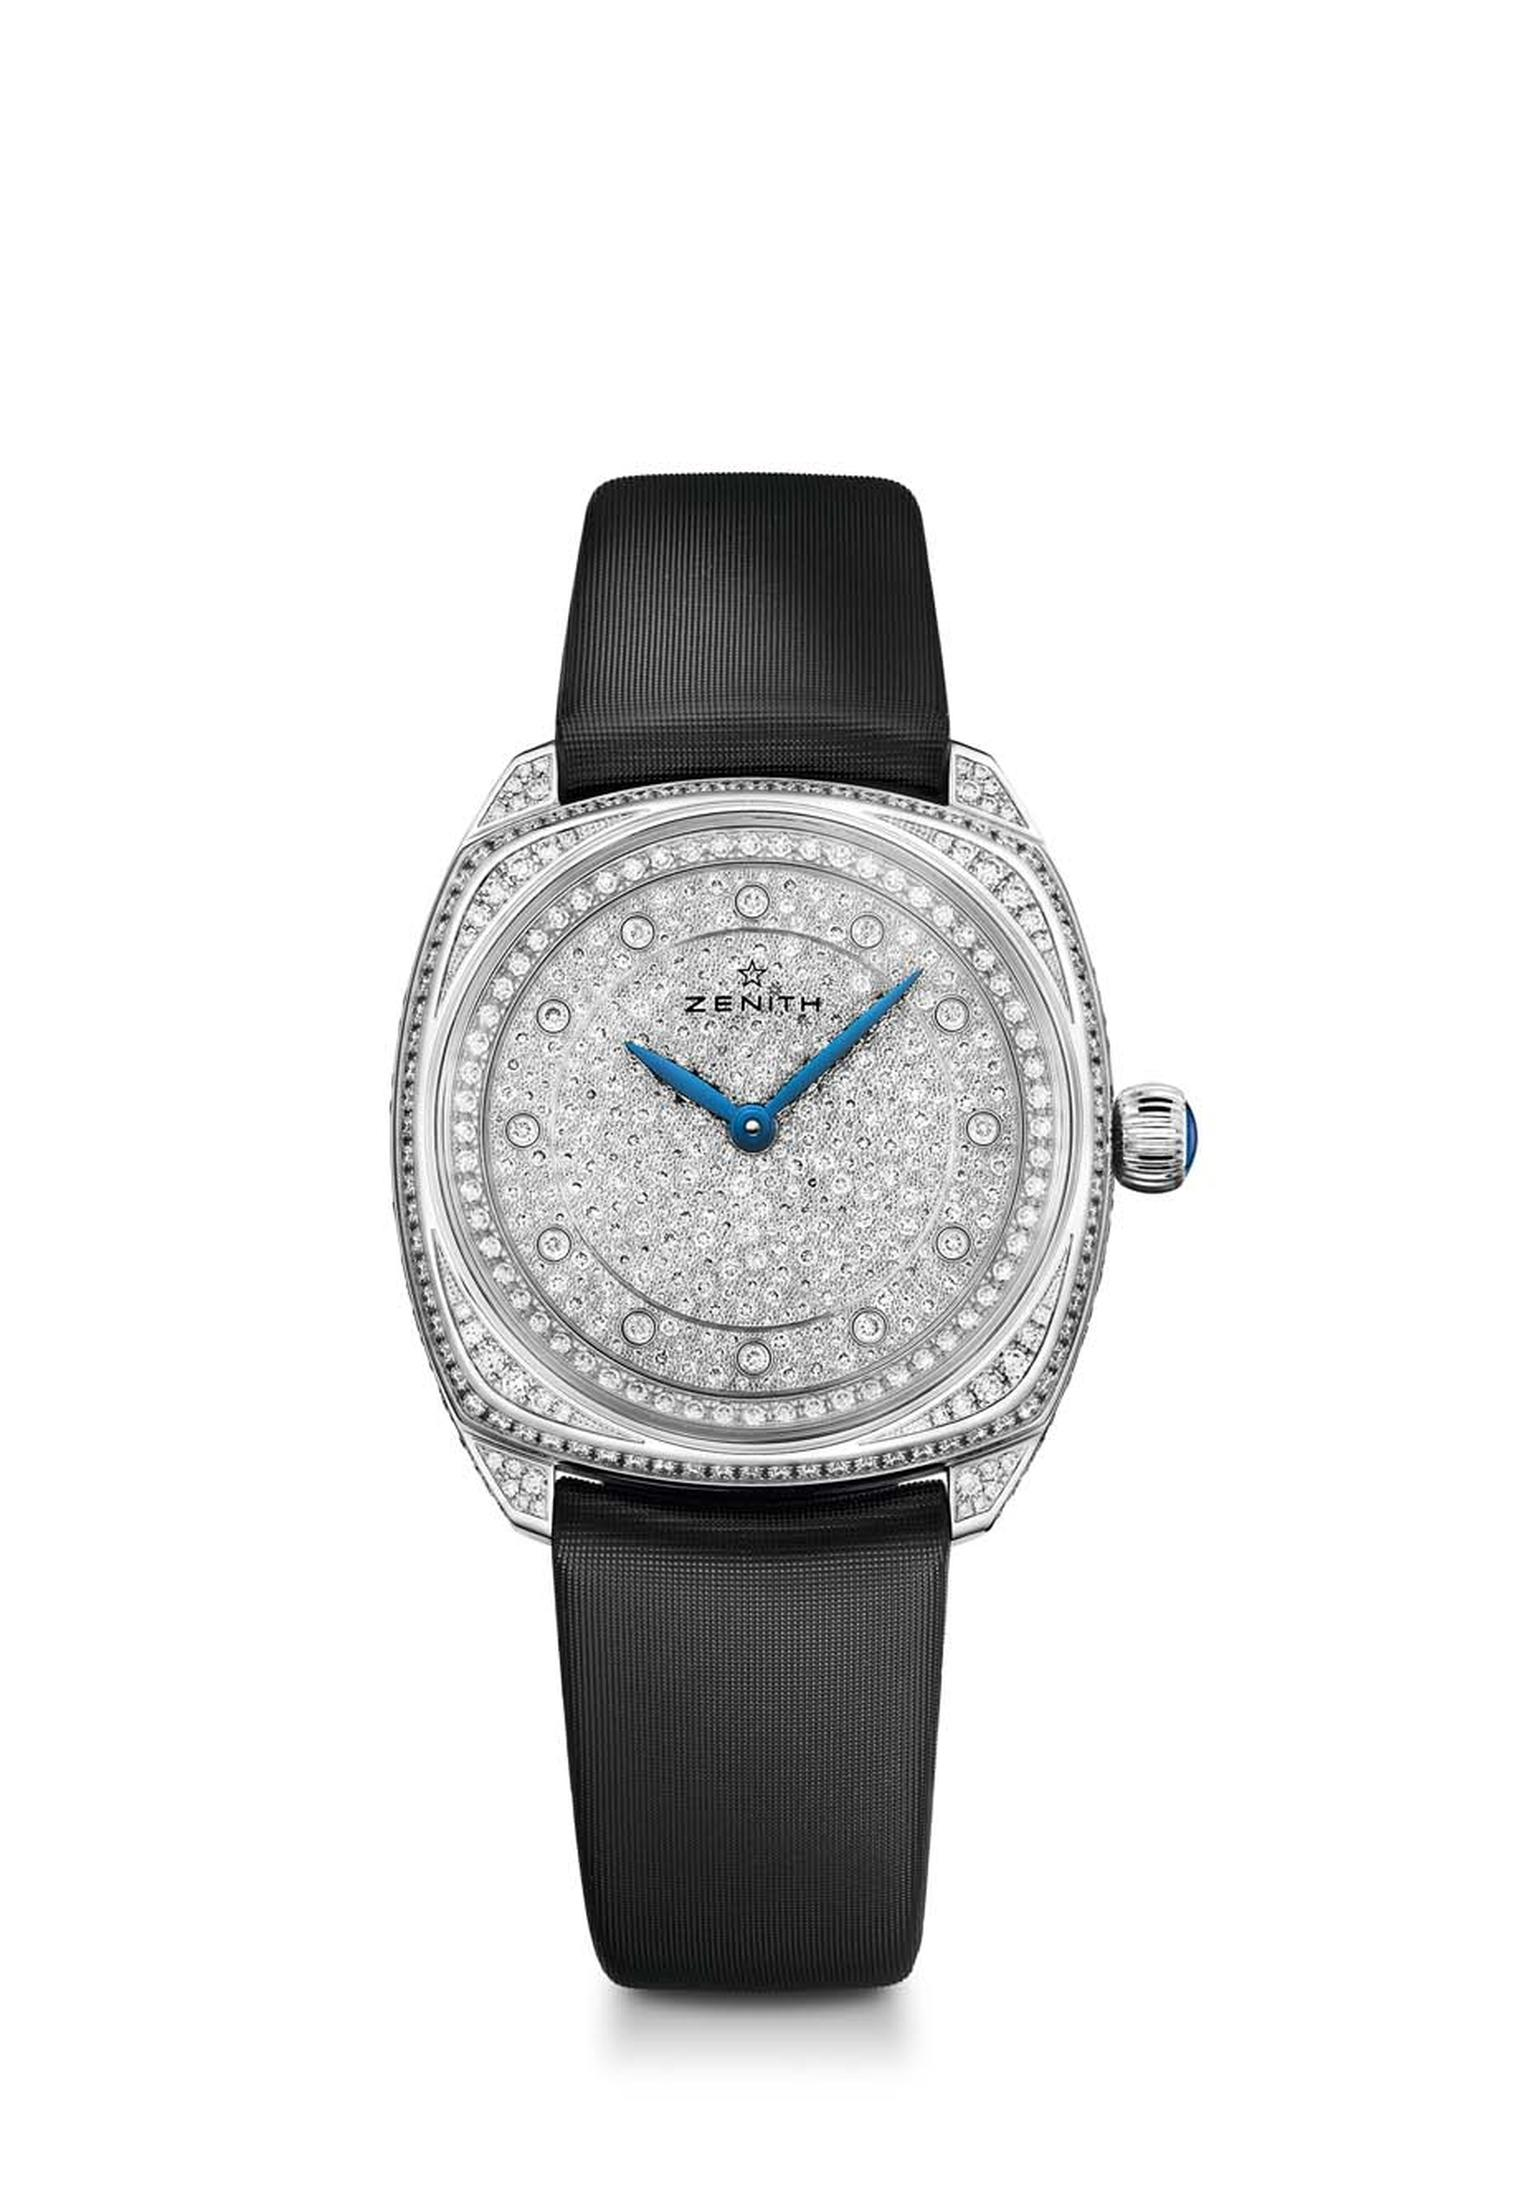 For maximum impact there is the stunning full-set white gold 33mm Zenith Star watch, set with a total of 765 diamonds on the dial, bezel, lugs, case and clasp.